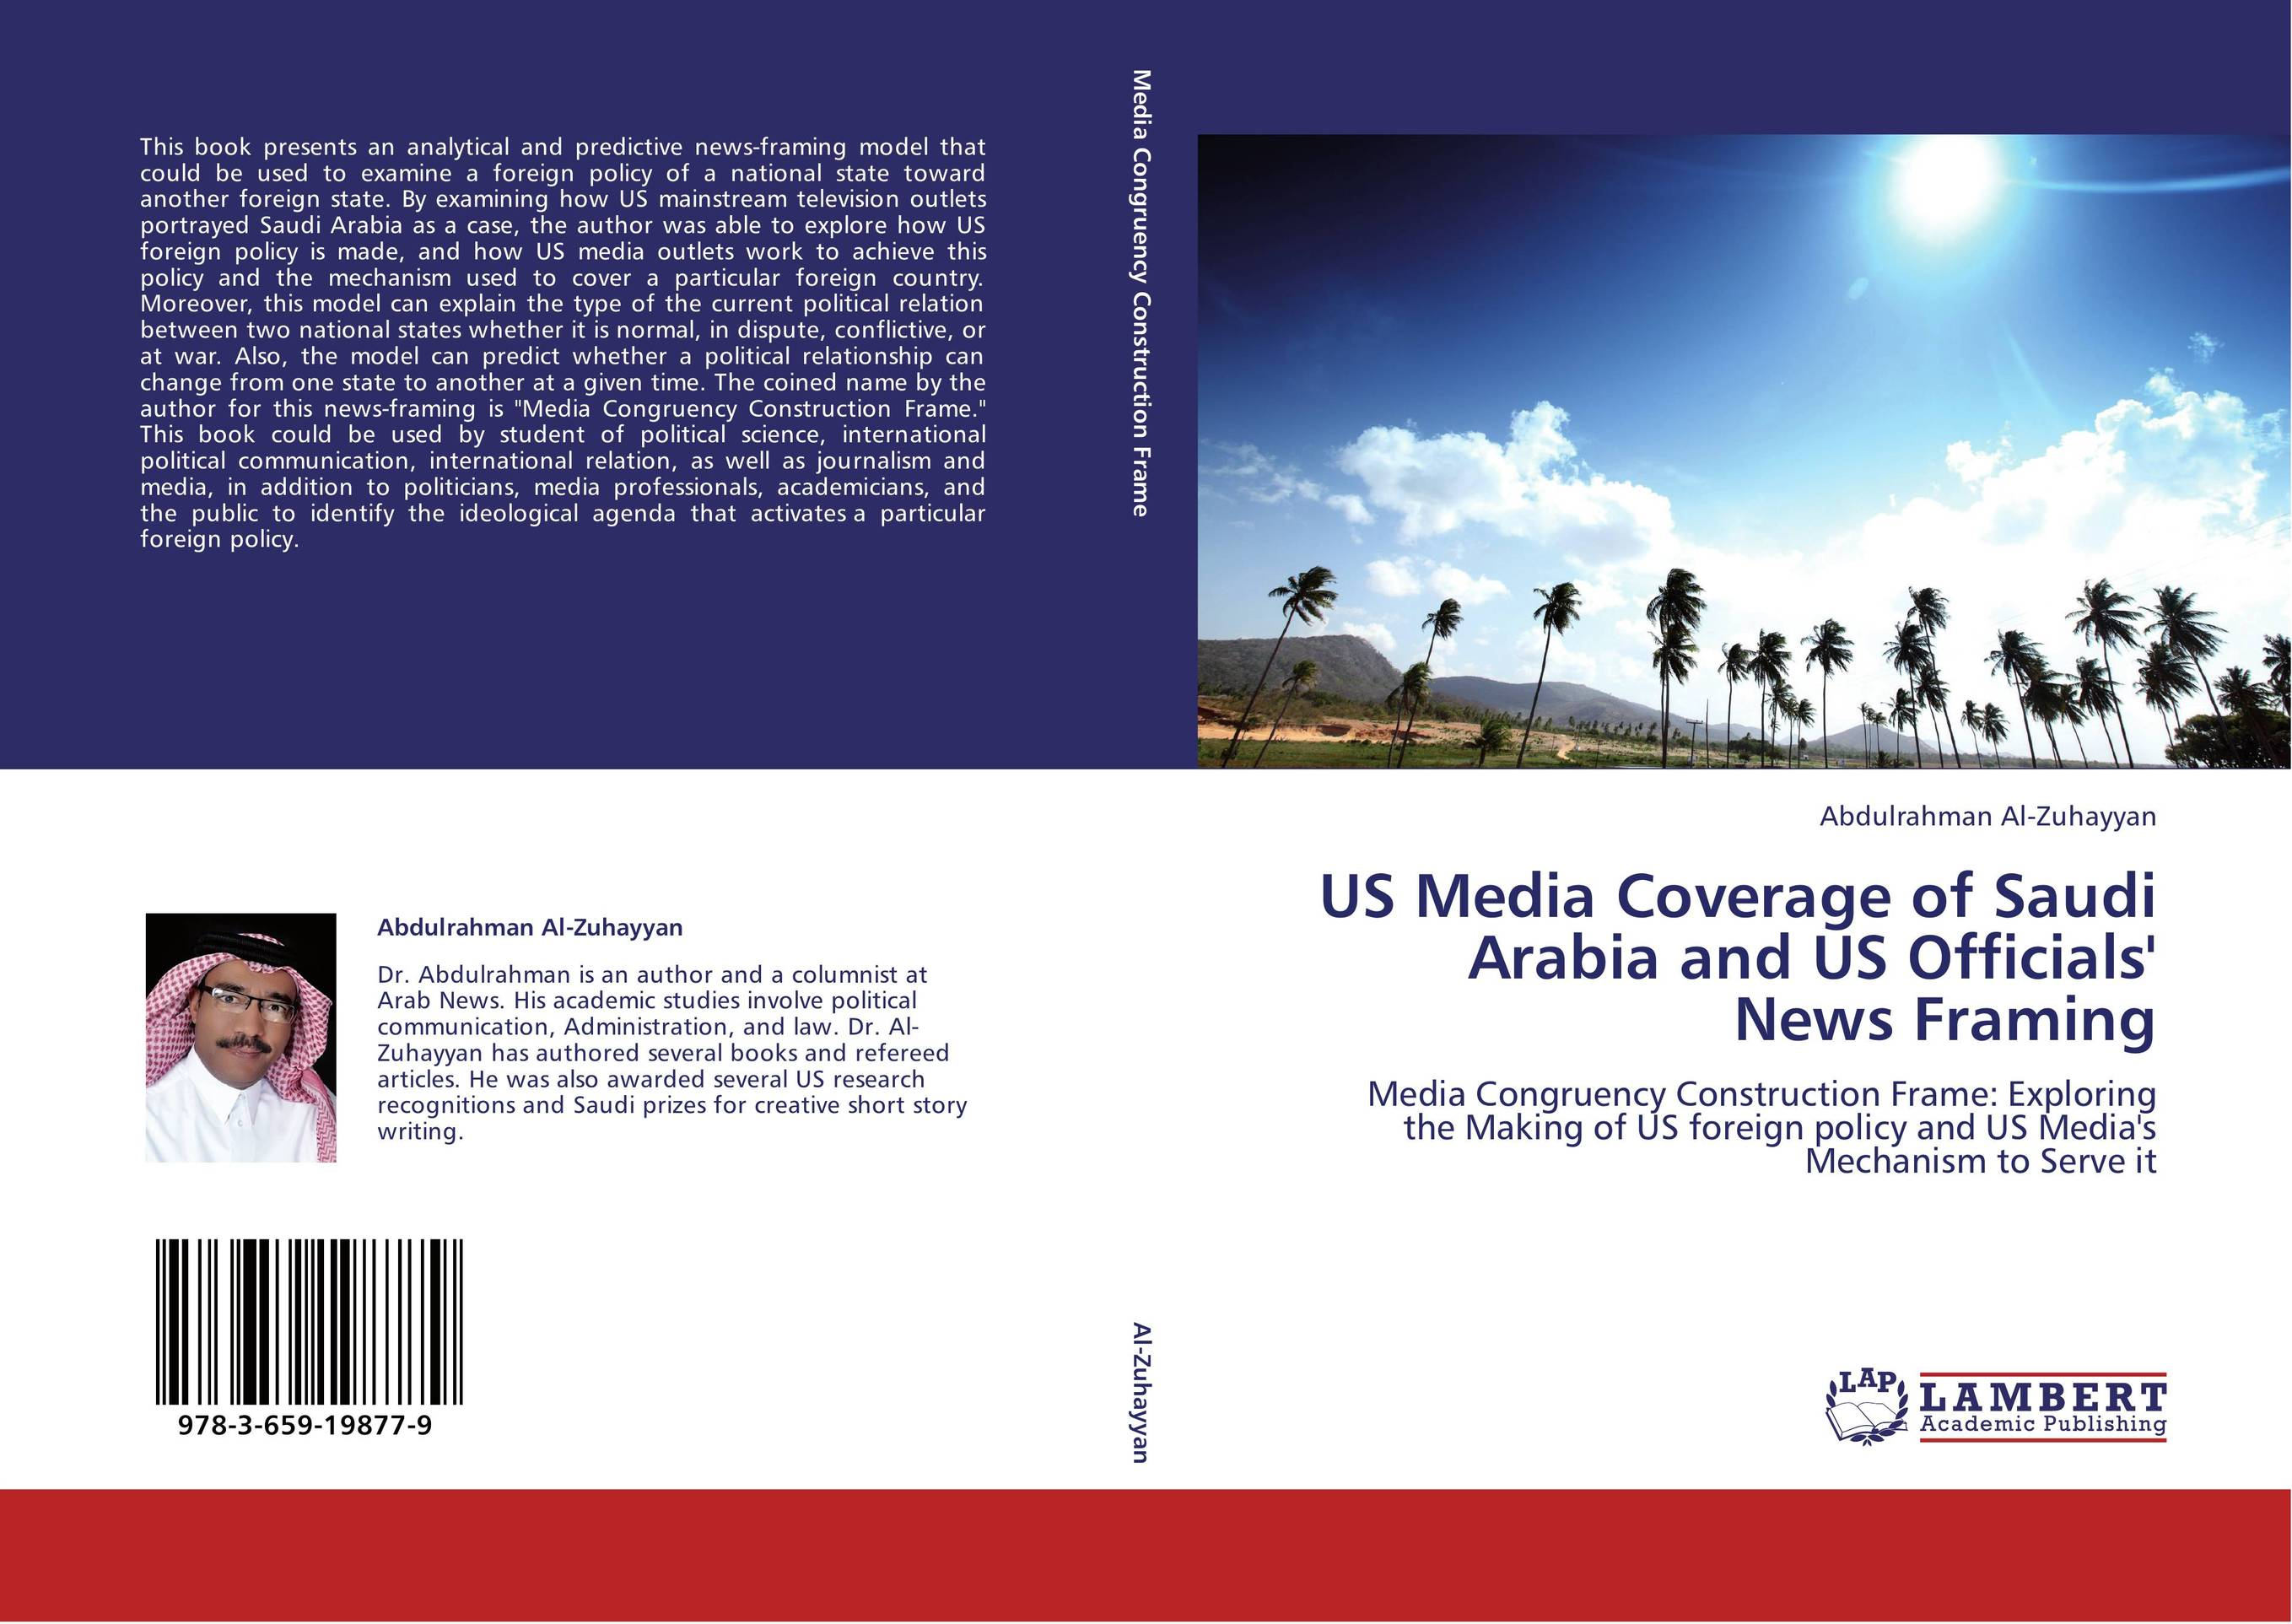 a study on us foreign police toward africa Peter schraeder's new analusis of american foreign policy toward africa is a welcome addition to the literaure on american foreign relations with countires south of the sahara and to the more general study of american foreign policy.